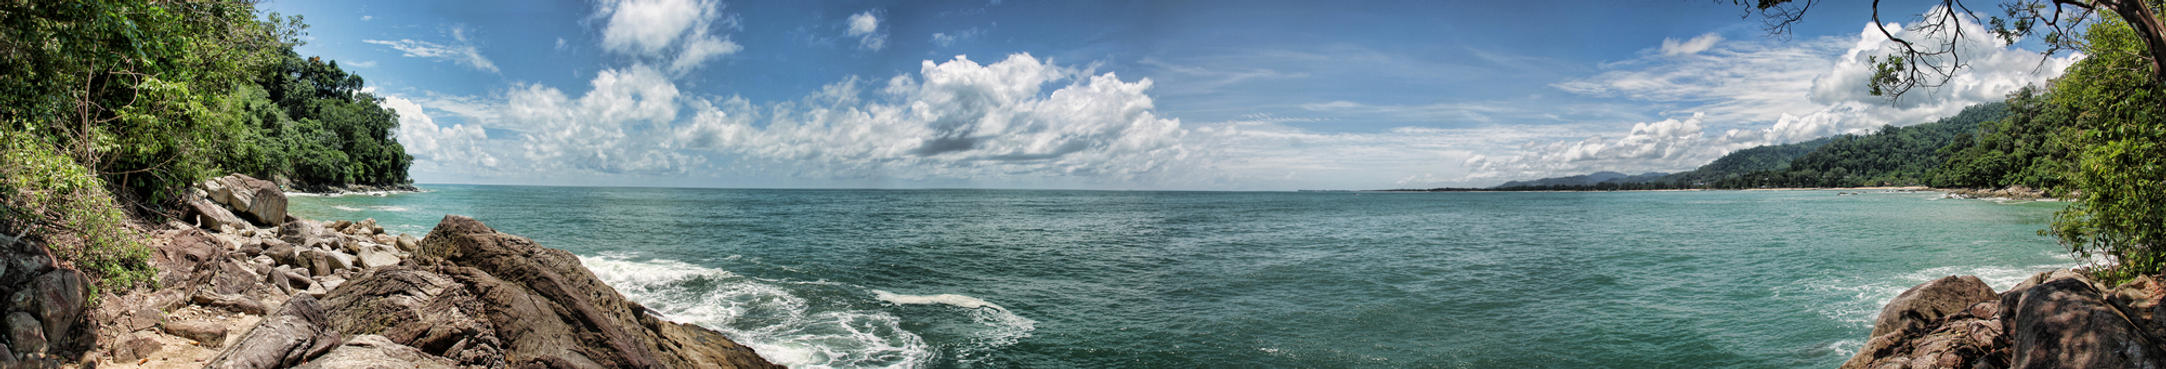 Panorama of Khao Lak Beach by h3design